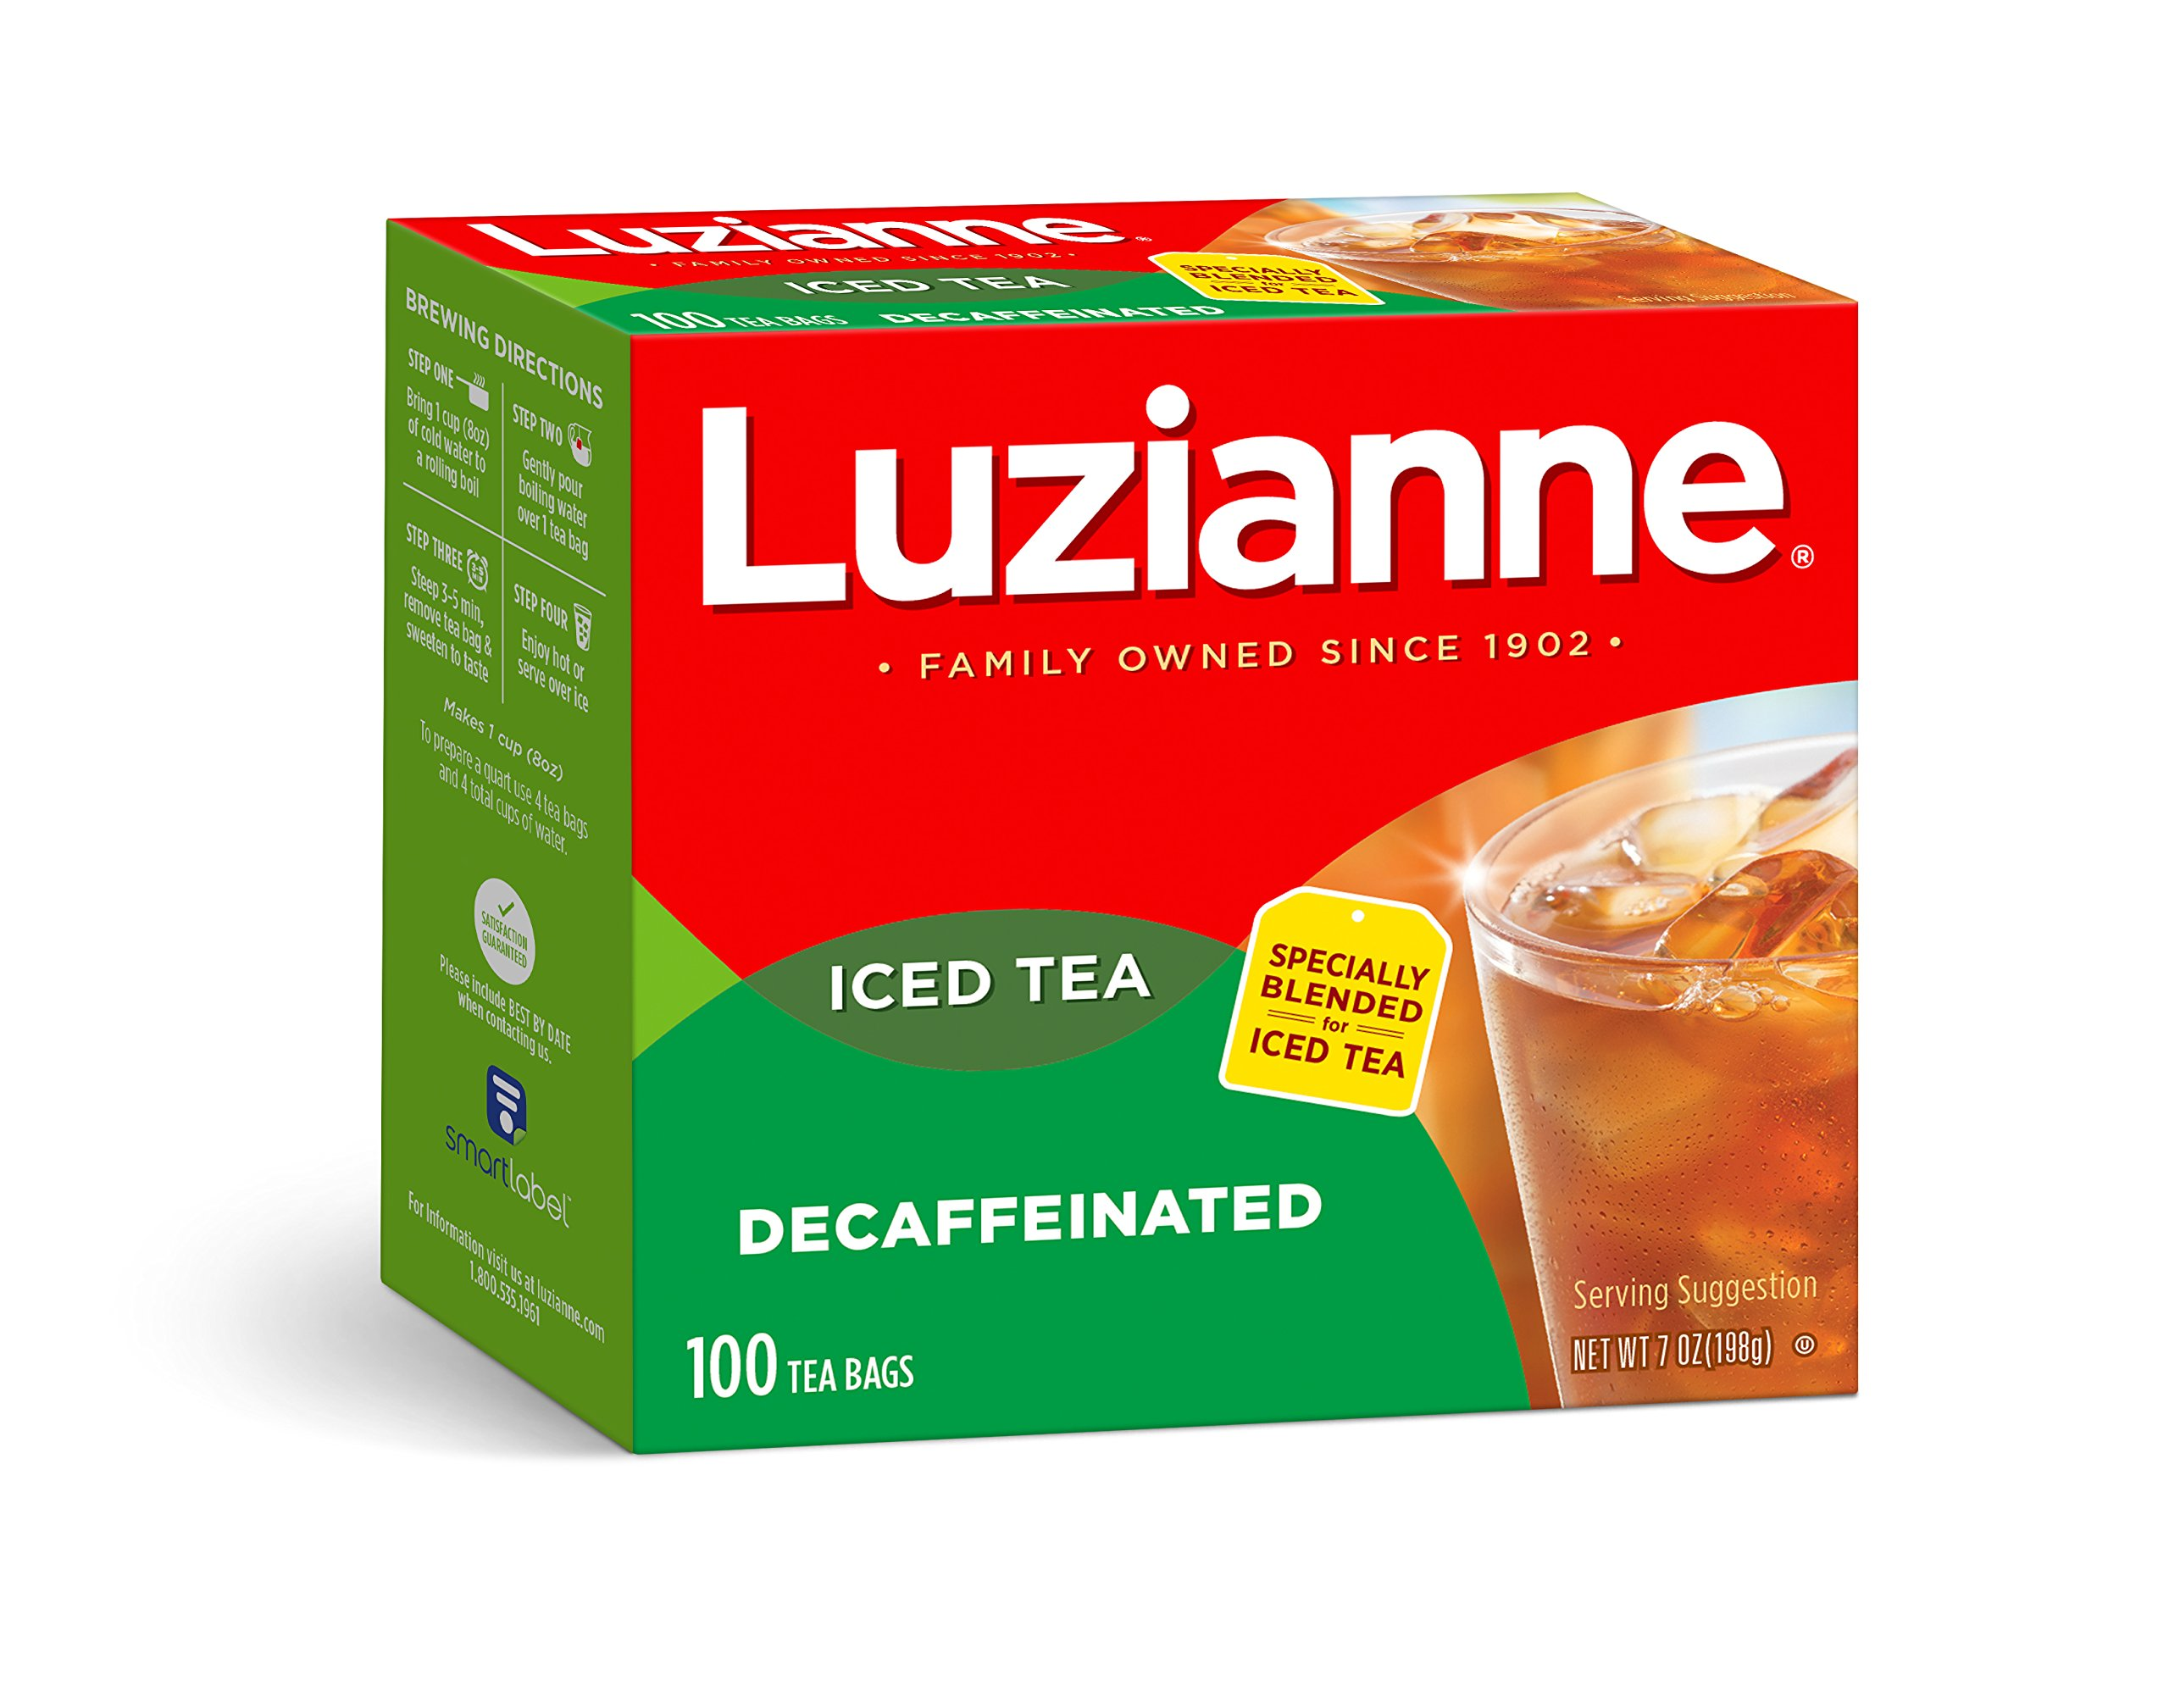 Luzianne Decaffeinated Iced Tea Bags 100 ct. Box (Pack of 4)